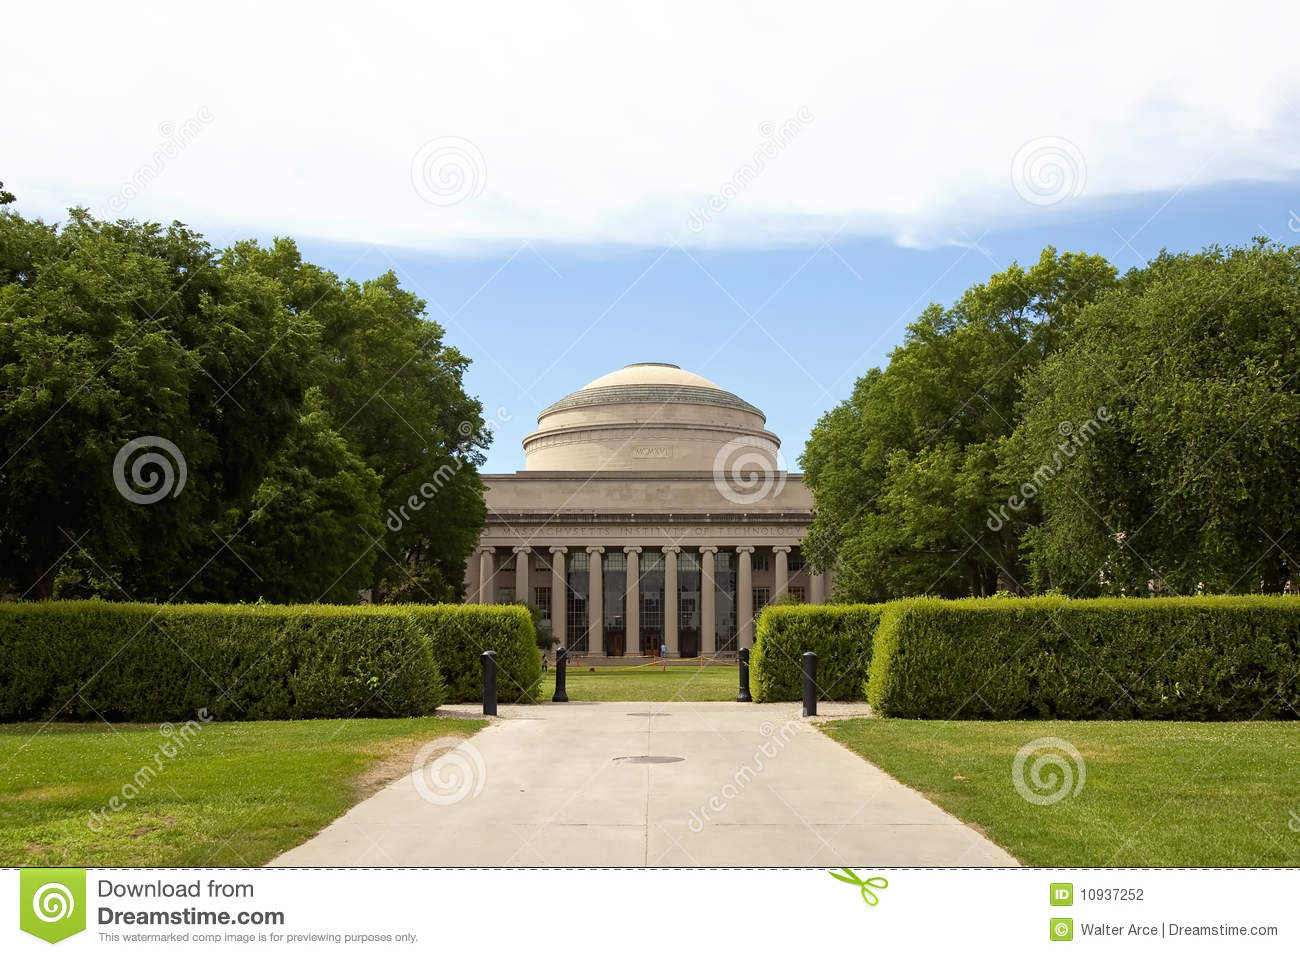 massachusetts institute of technology dissertations